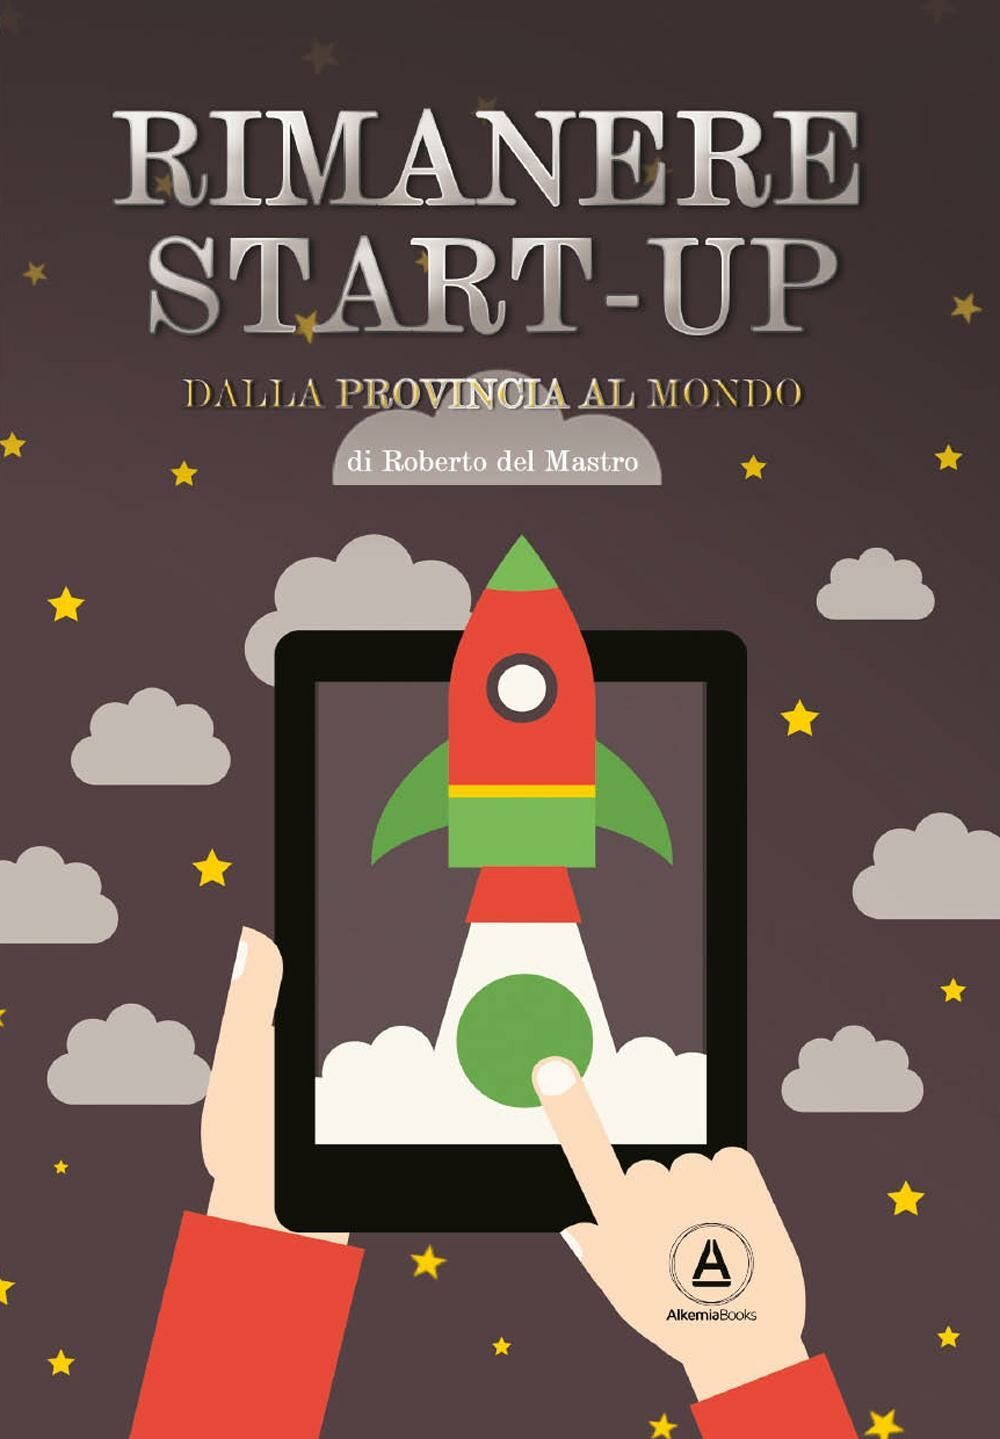 Rimanere start-up. Dalla provincia al mondo